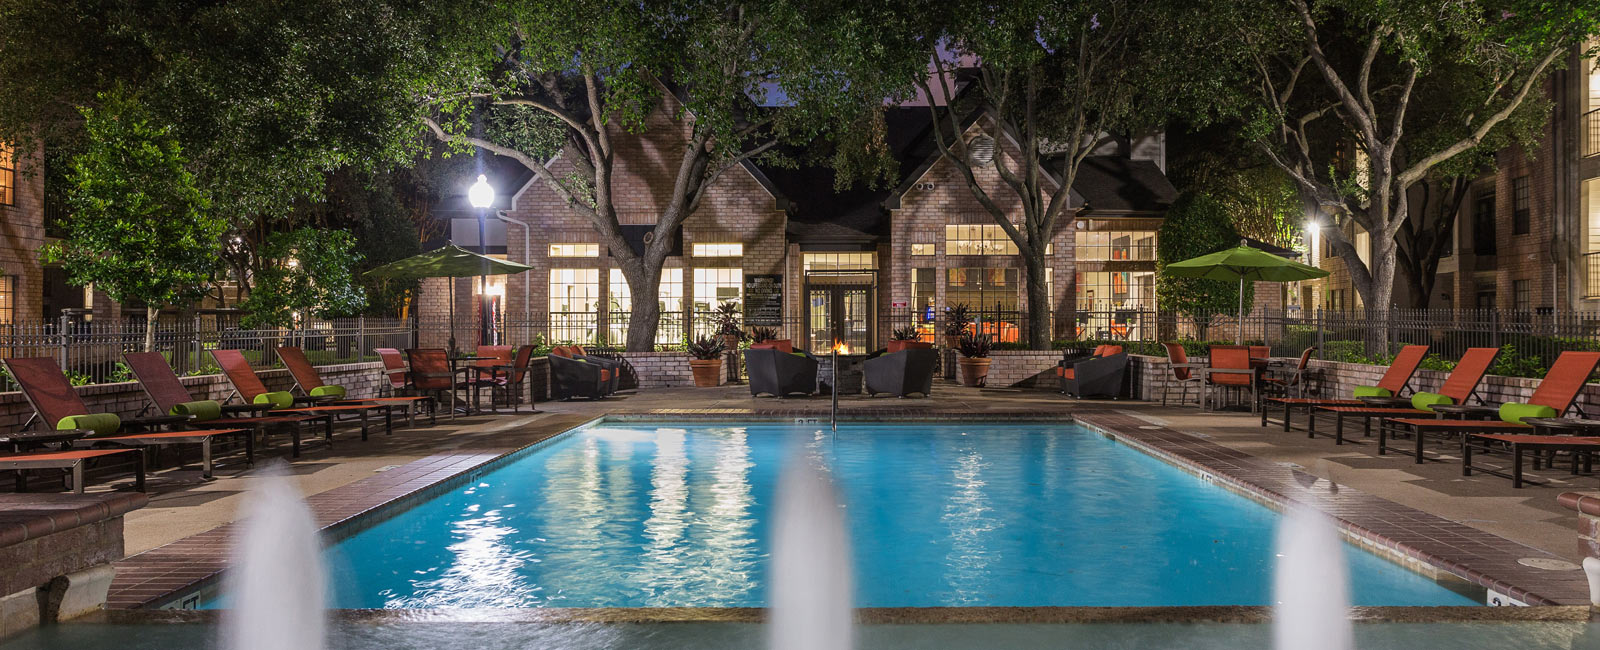 Greenbriar Apartments with pool in Houston, TX